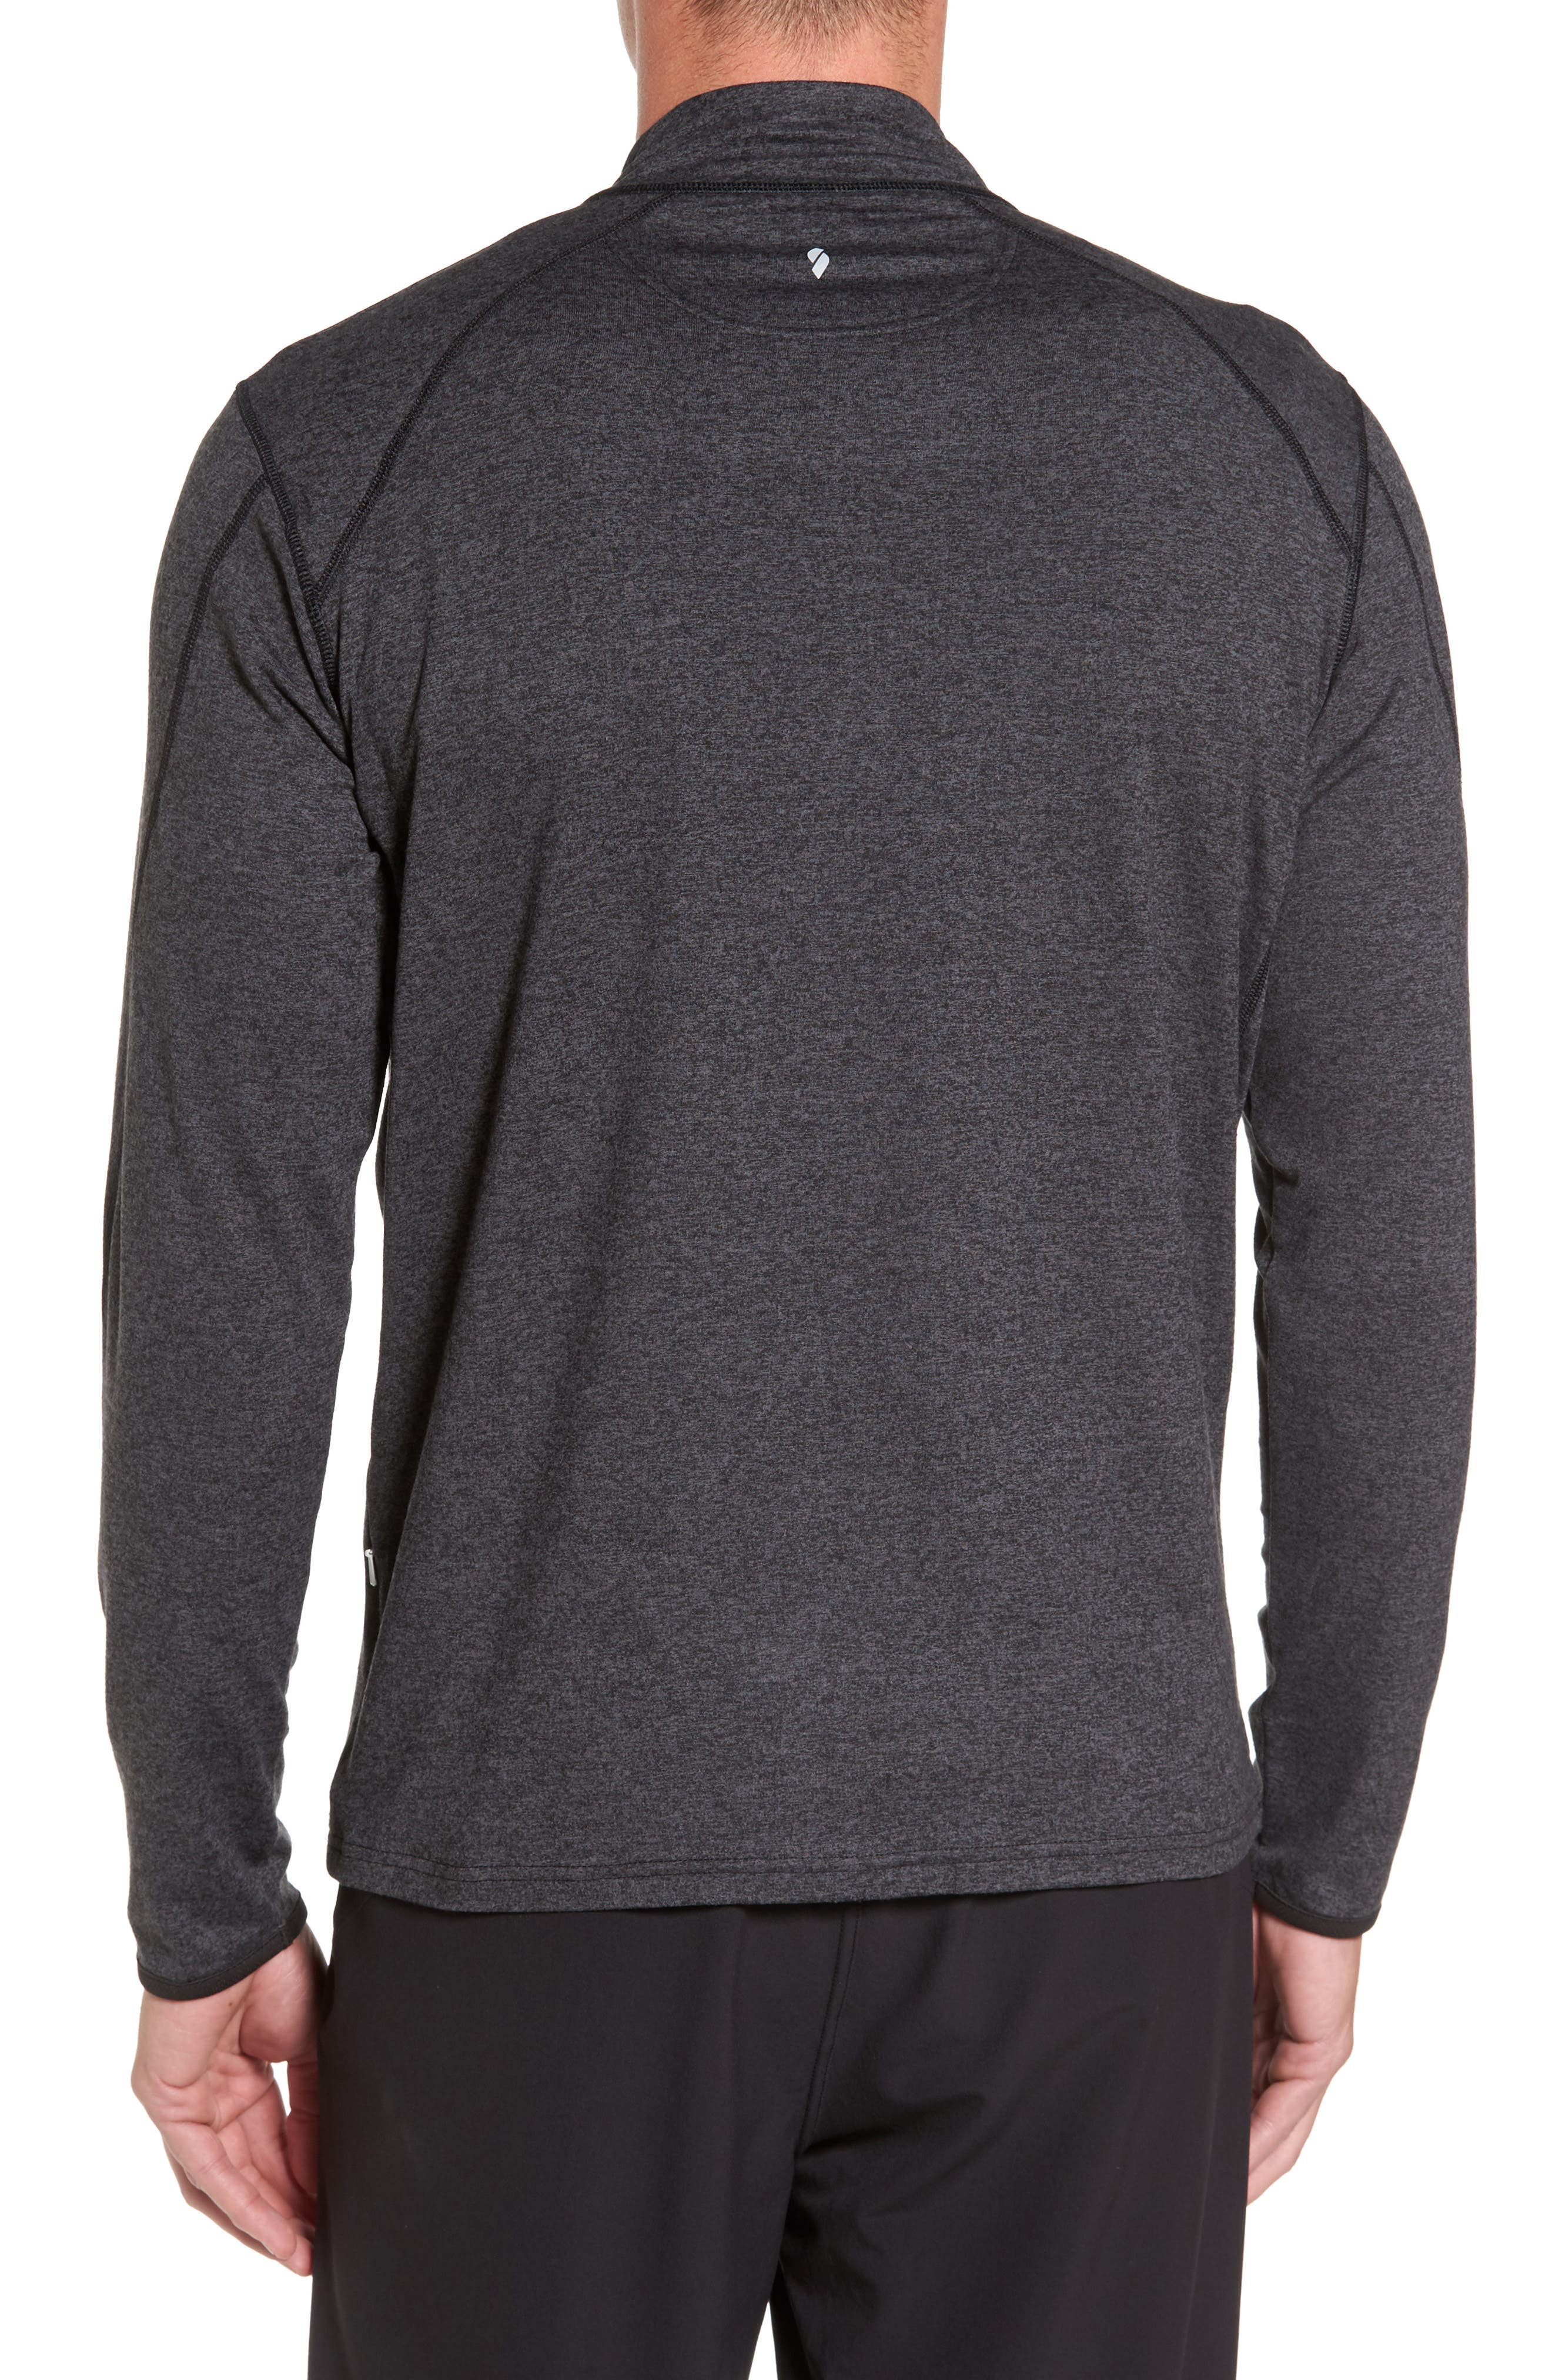 'Elevate' Moisture Wicking Stretch Quarter Zip Pullover,                             Alternate thumbnail 2, color,                             001